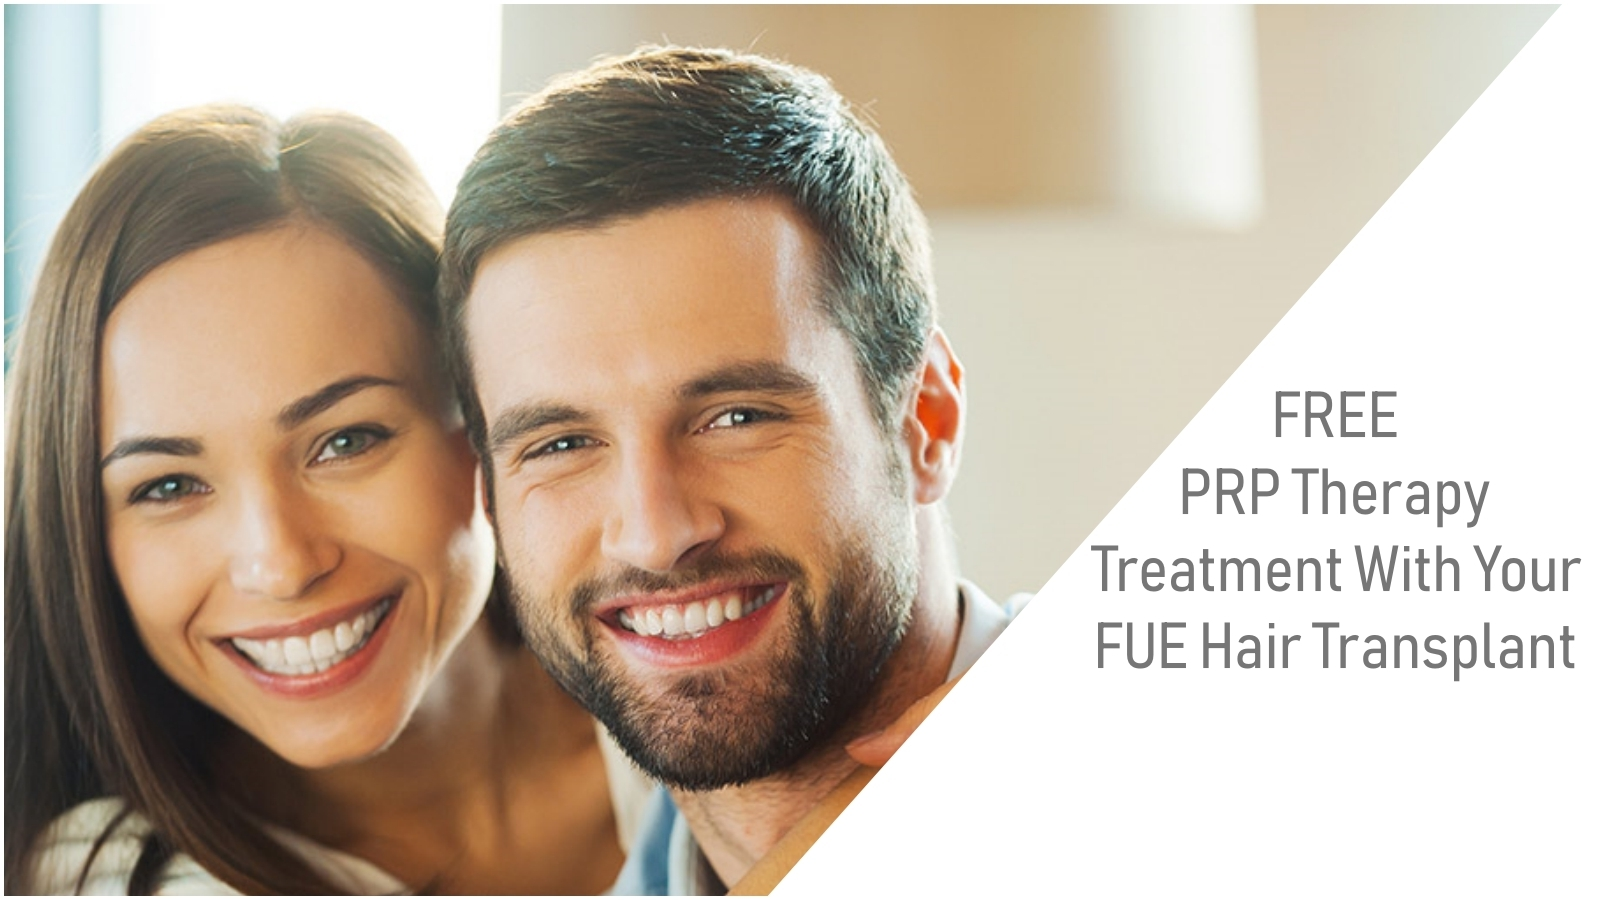 FREE-PRP Therapy with a Hair Transplant